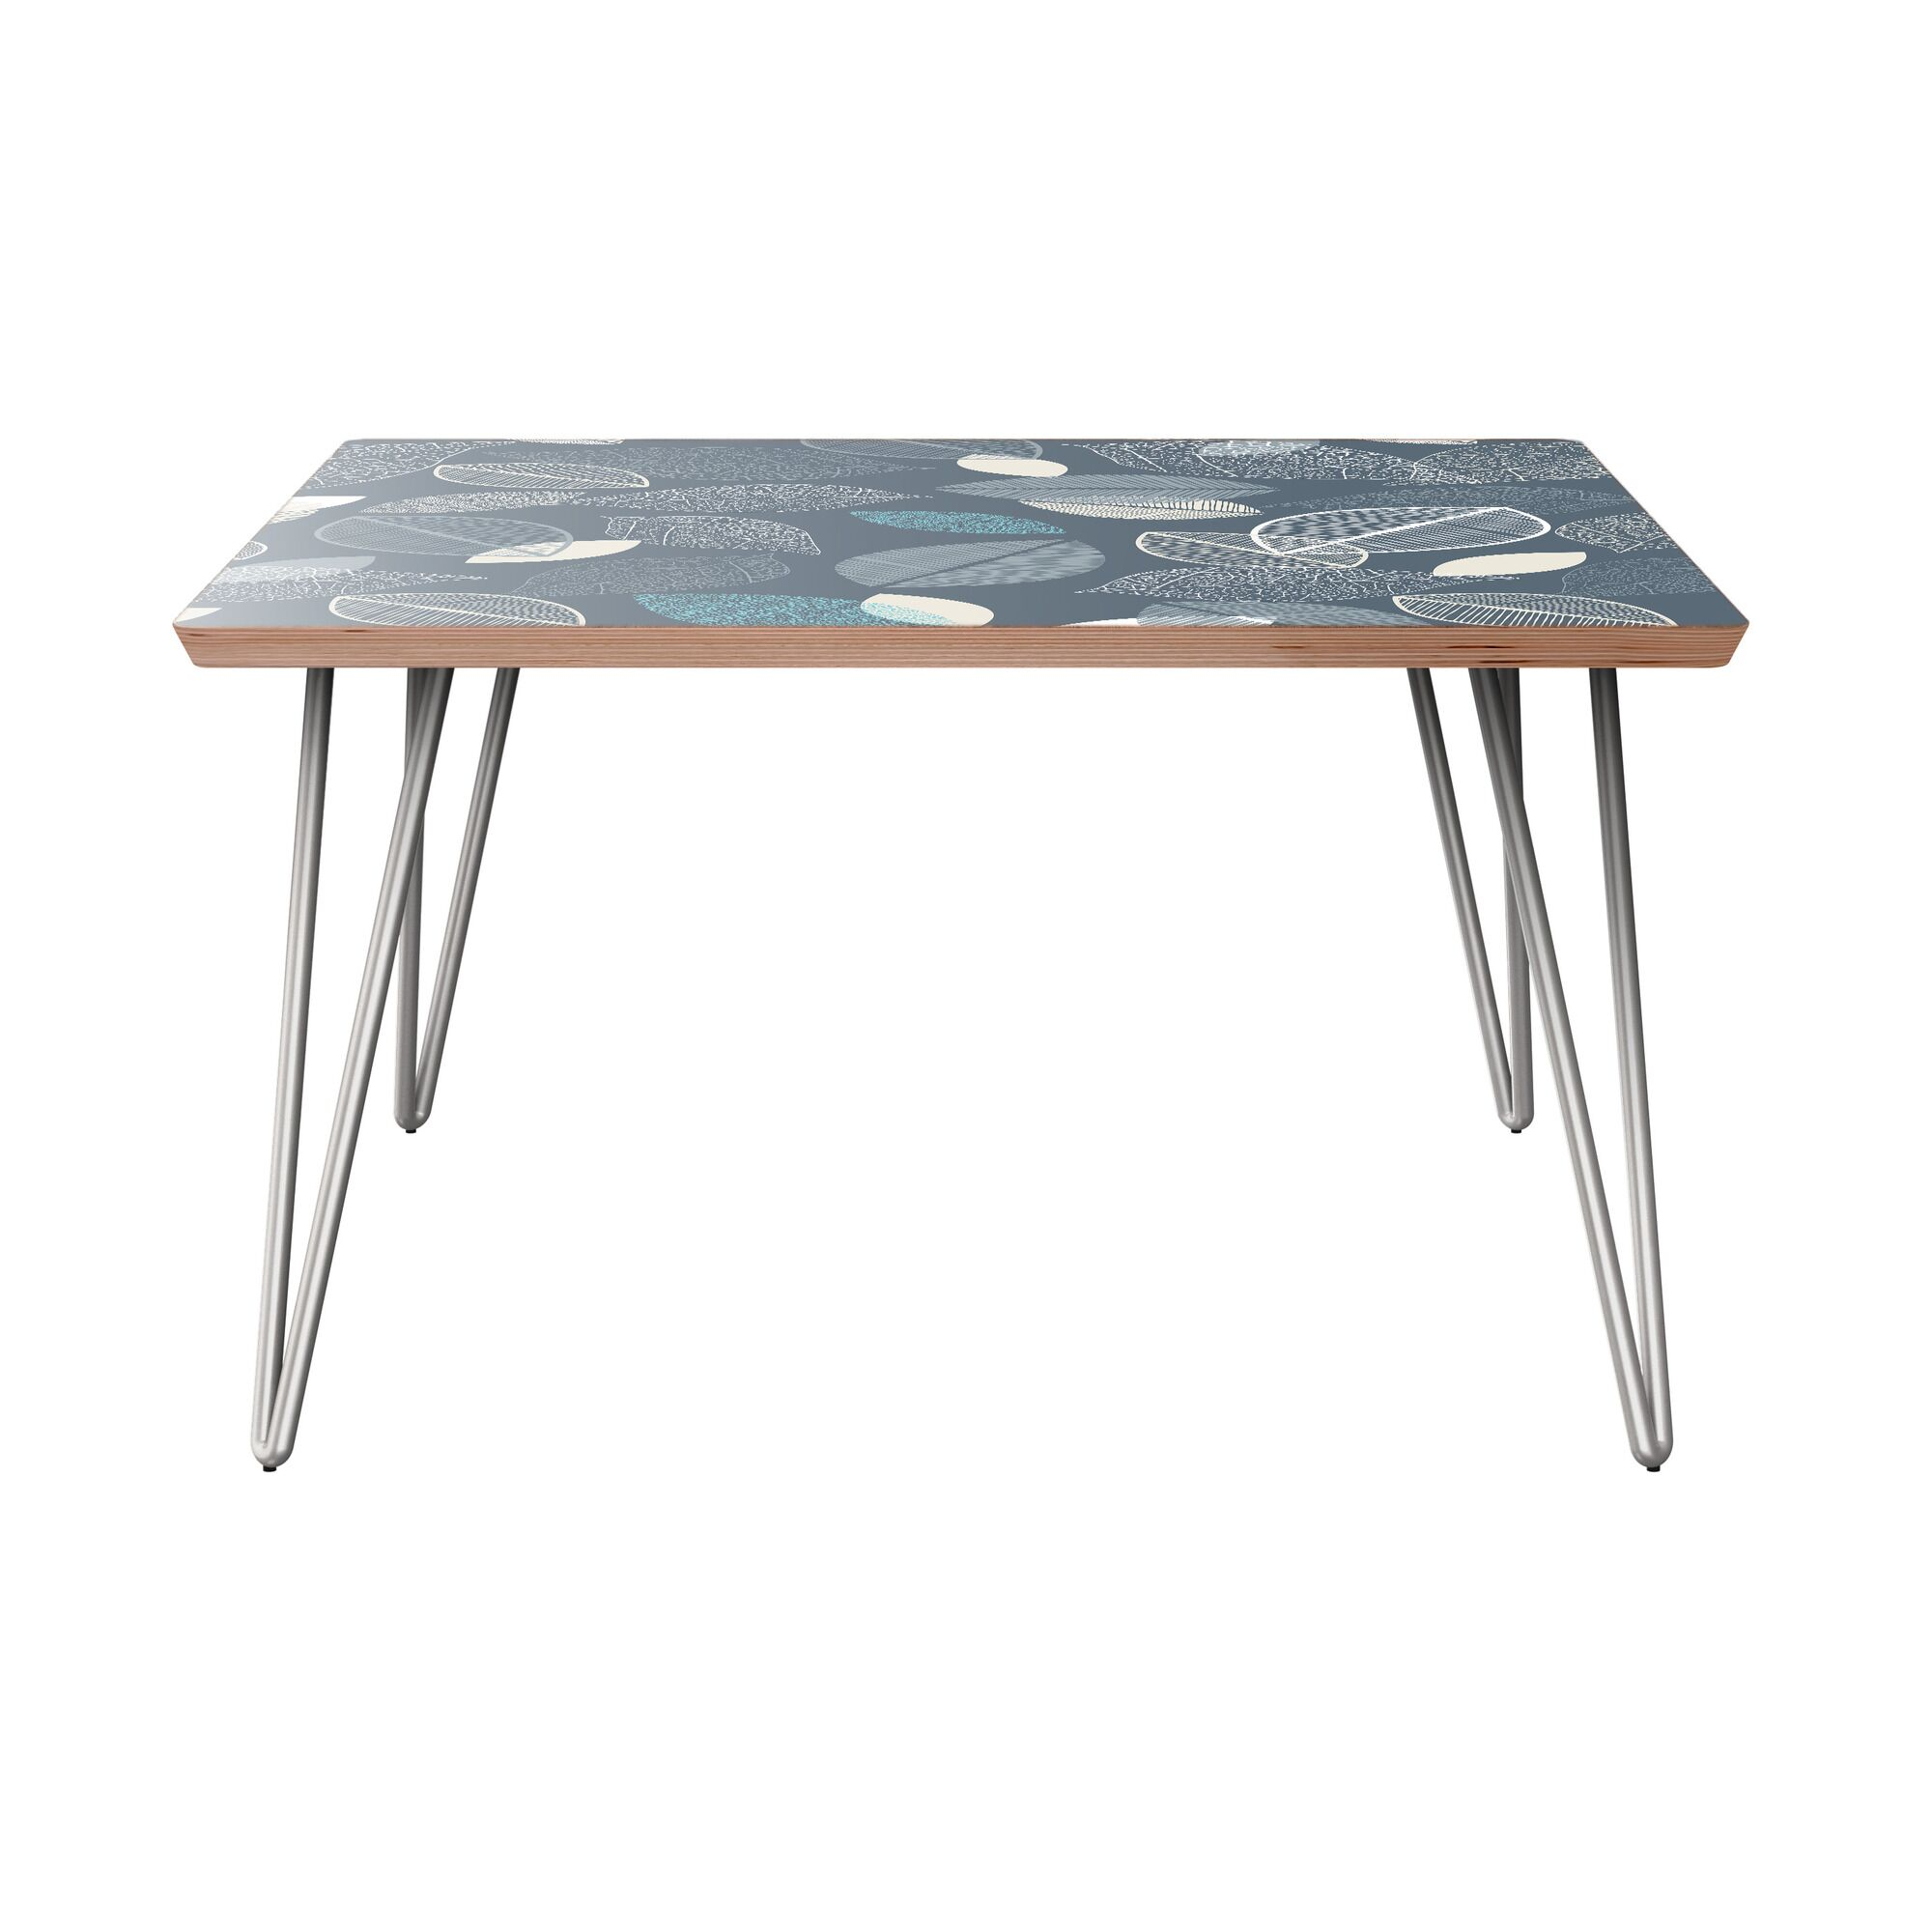 La Mesa Coffee Table Table Base Color: Chrome, Table Top Boarder Color: Walnut, Table Top Color: Green/Brown